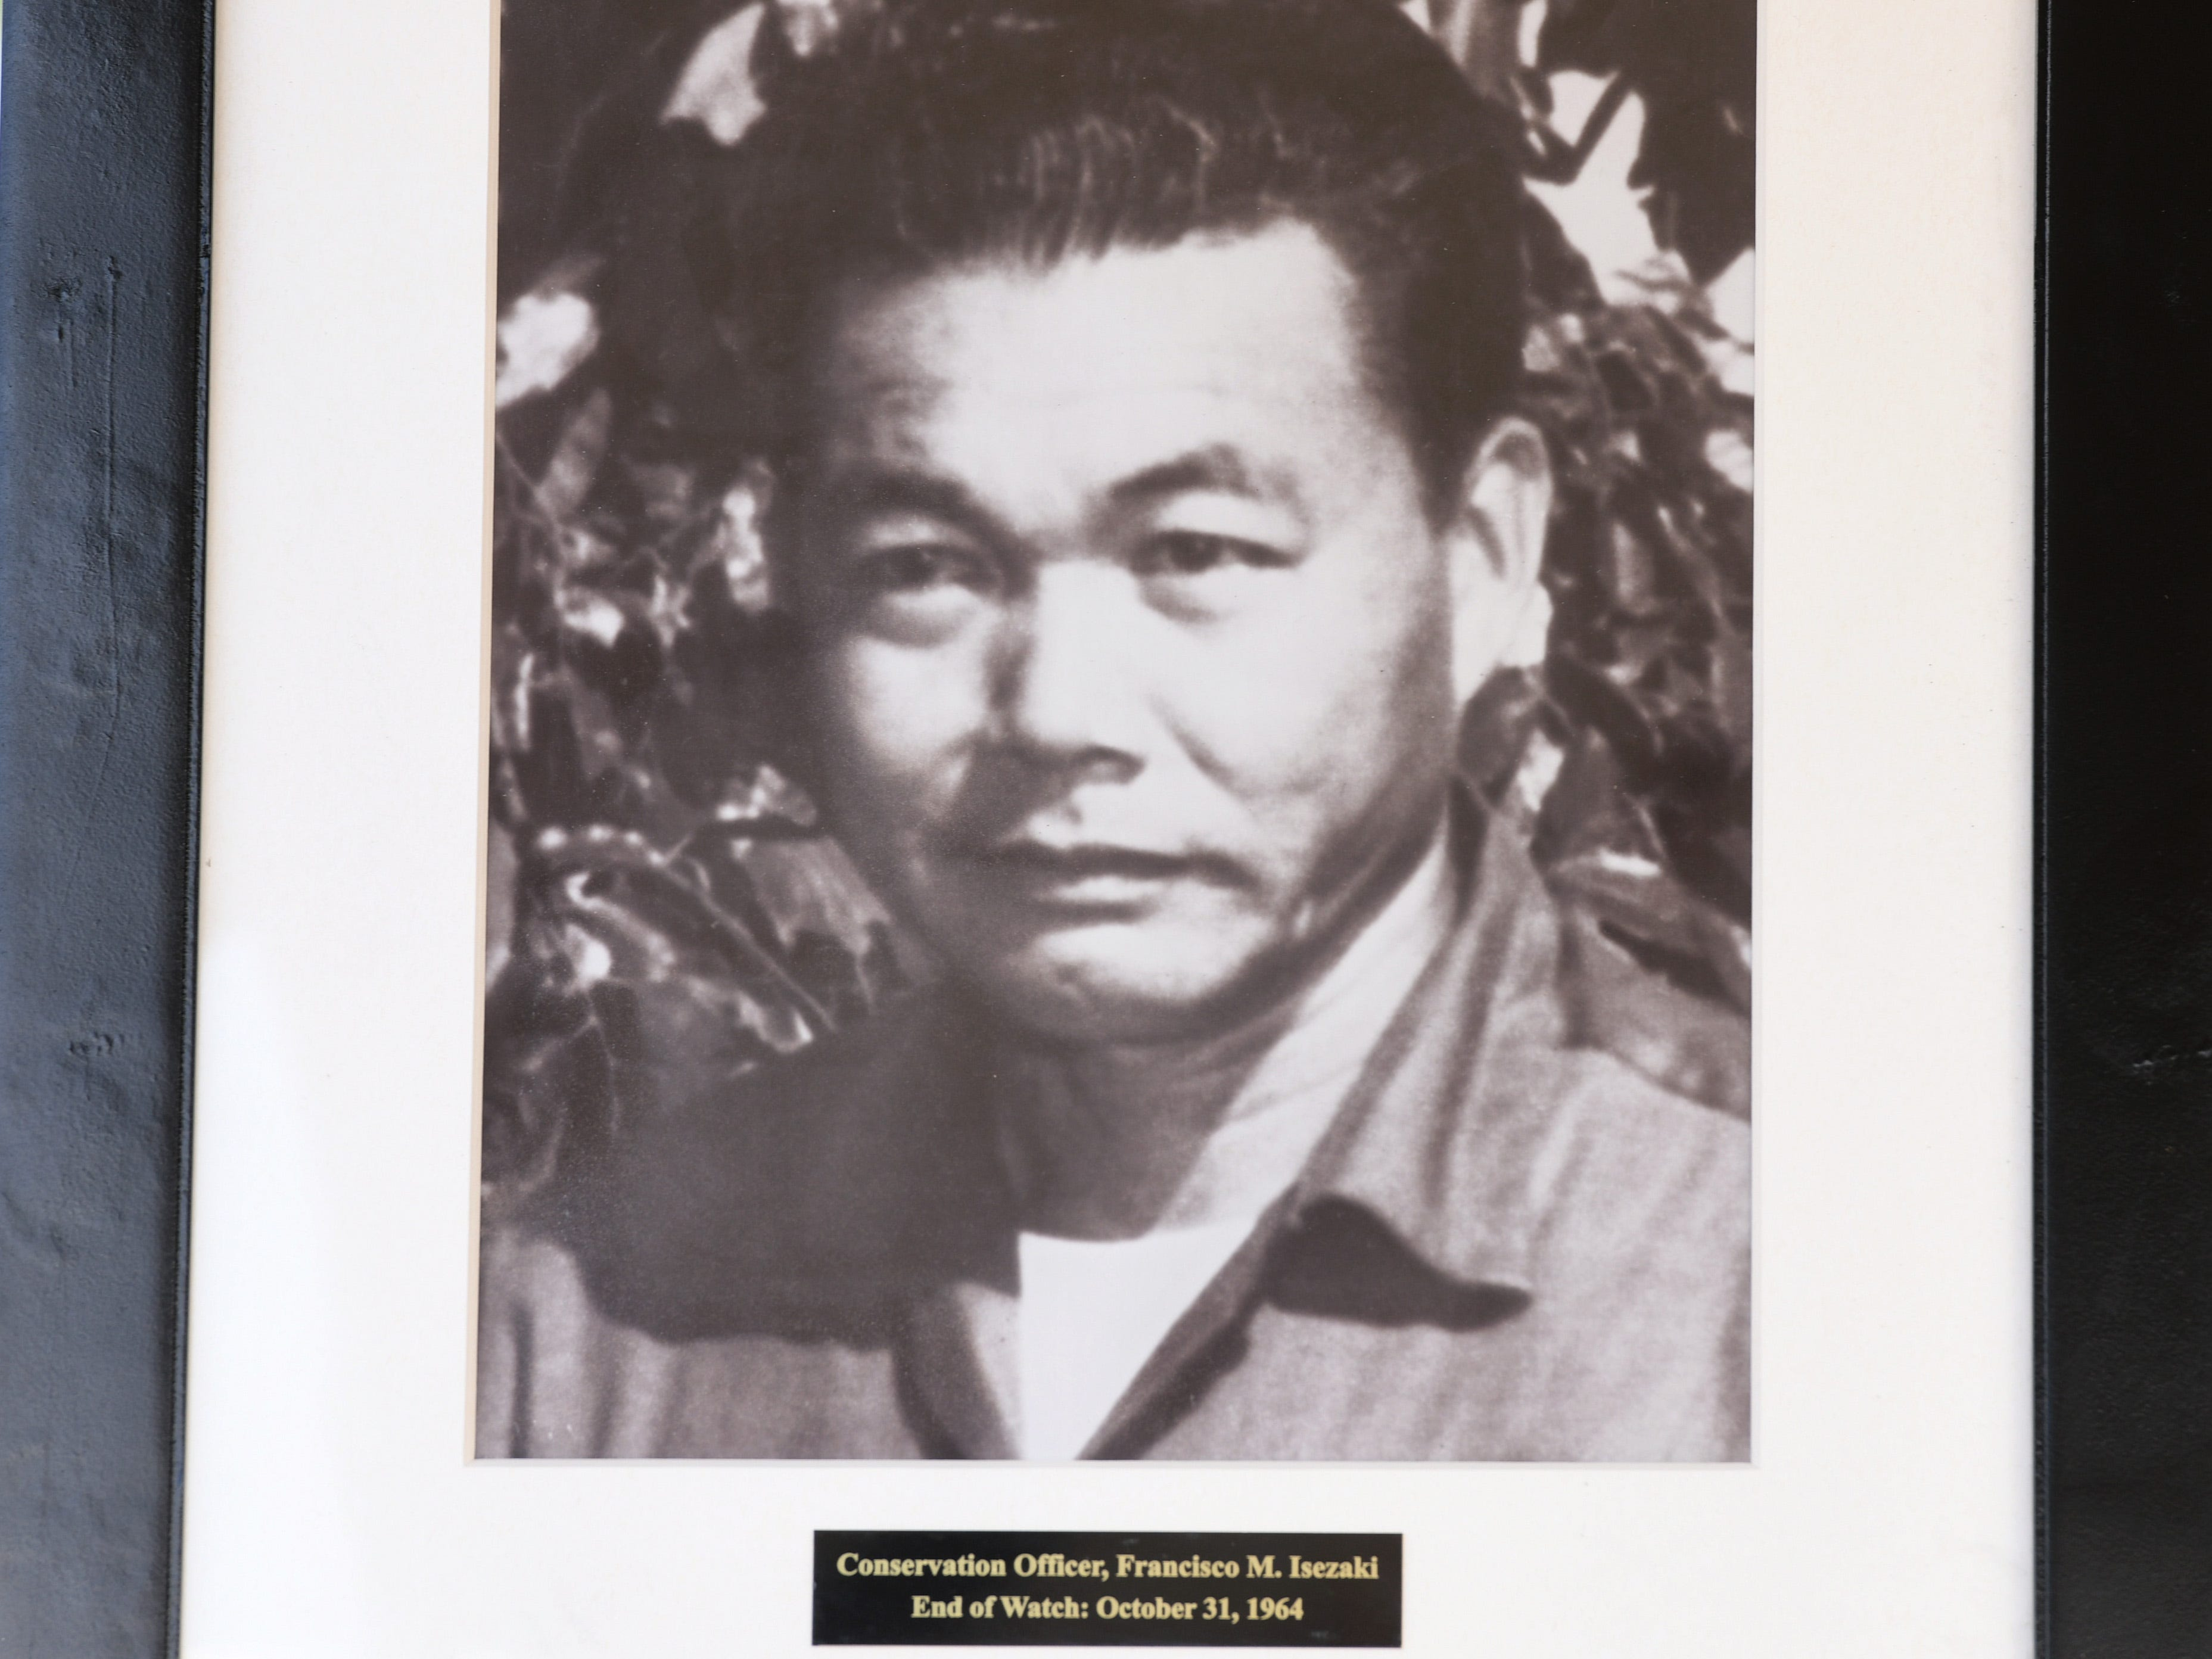 Conservation Officer Francisco Isezaki